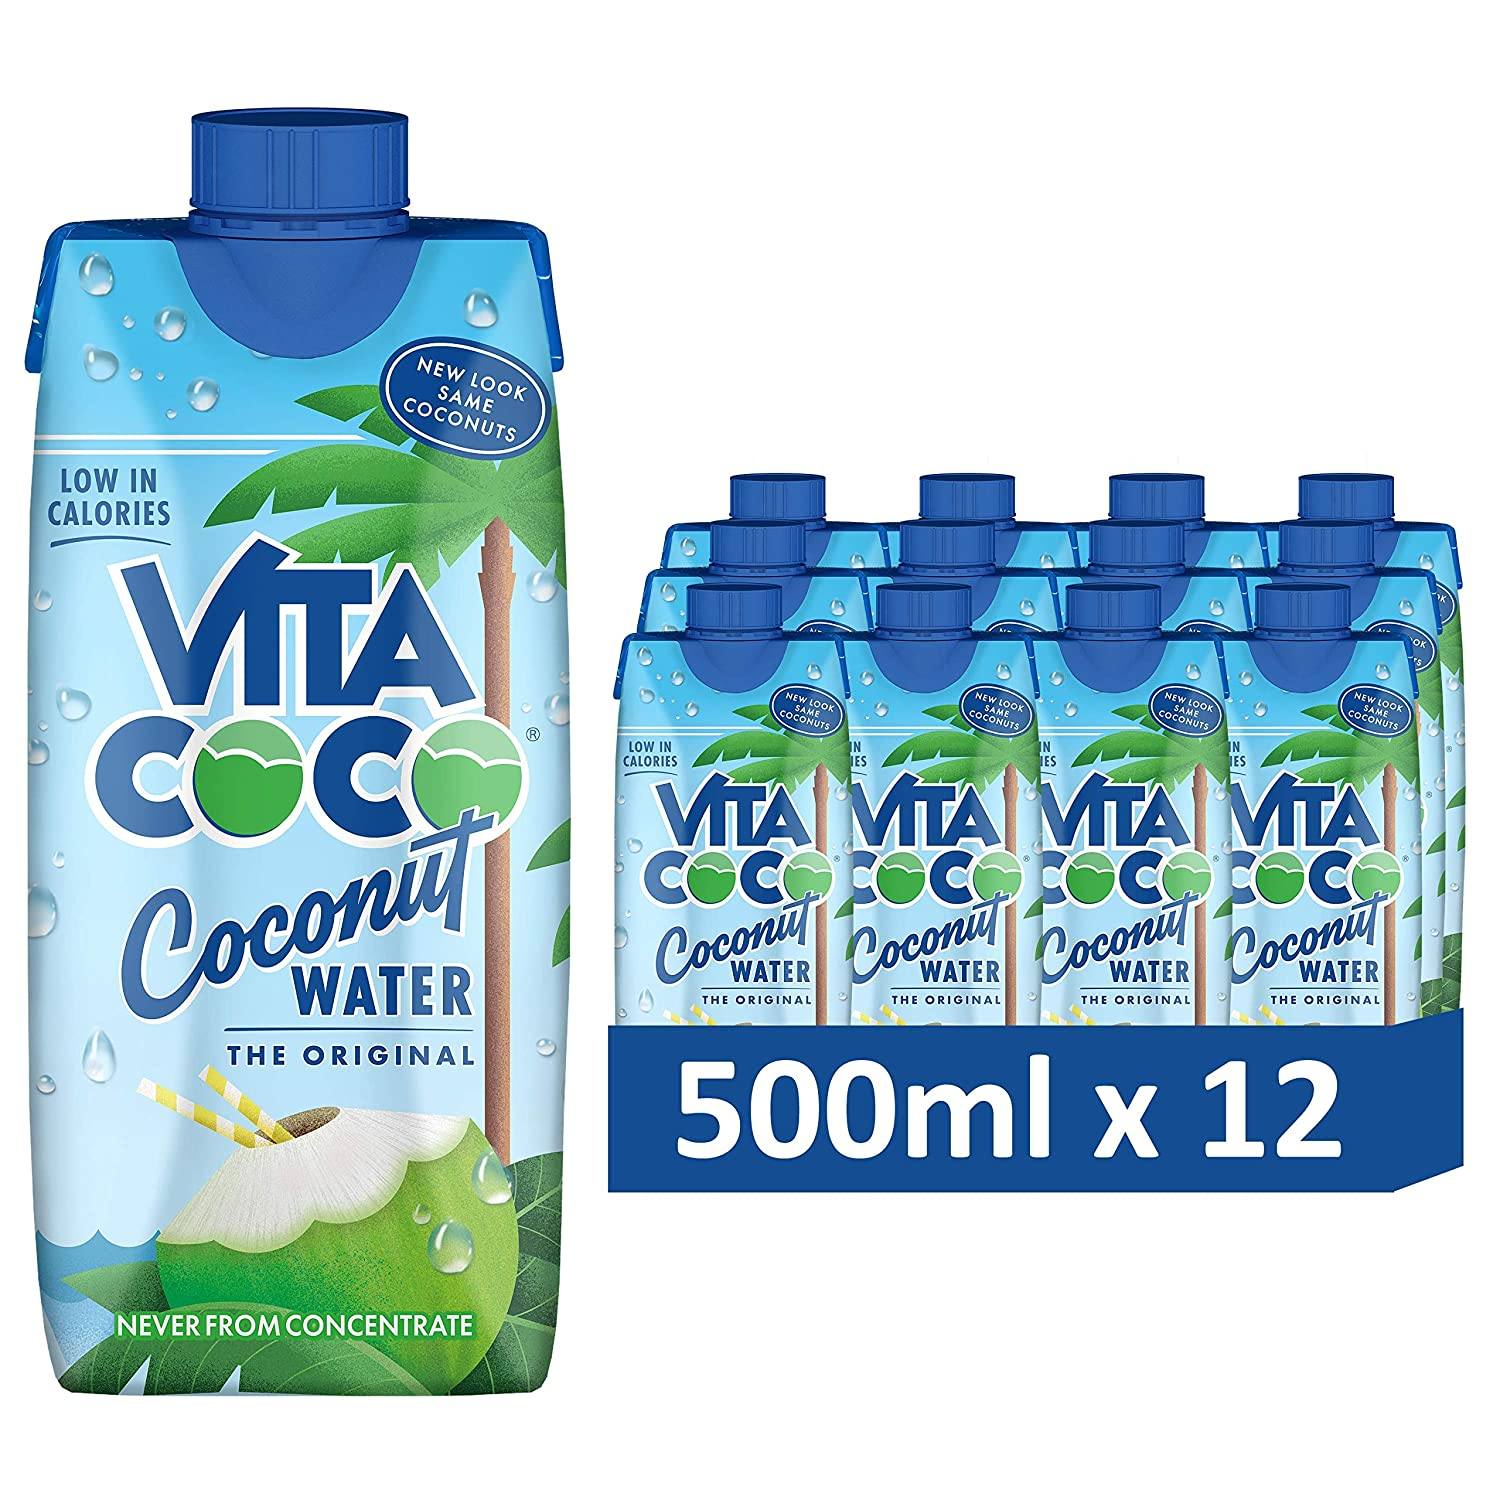 Vita Coco - Pure Coconut Water (500ml x 12) - Naturally Hydrating - Packed With Electrolytes - Gluten Free - Full Of Vitamin C & Potassium